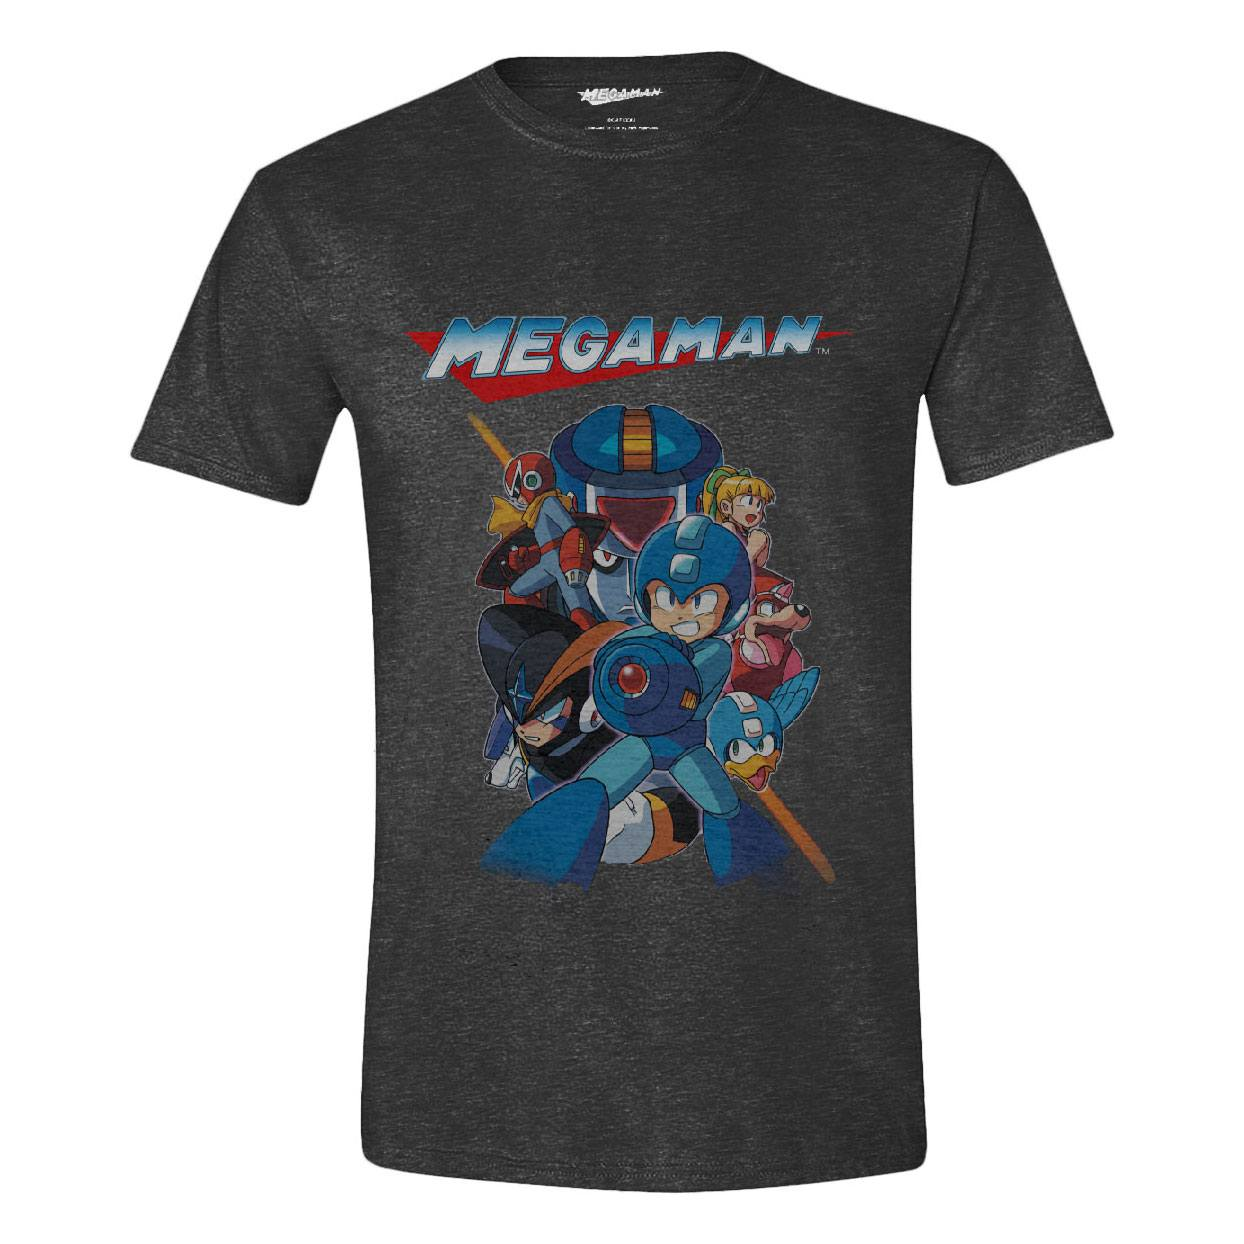 Mega Man T-Shirt Characters Battle Size L